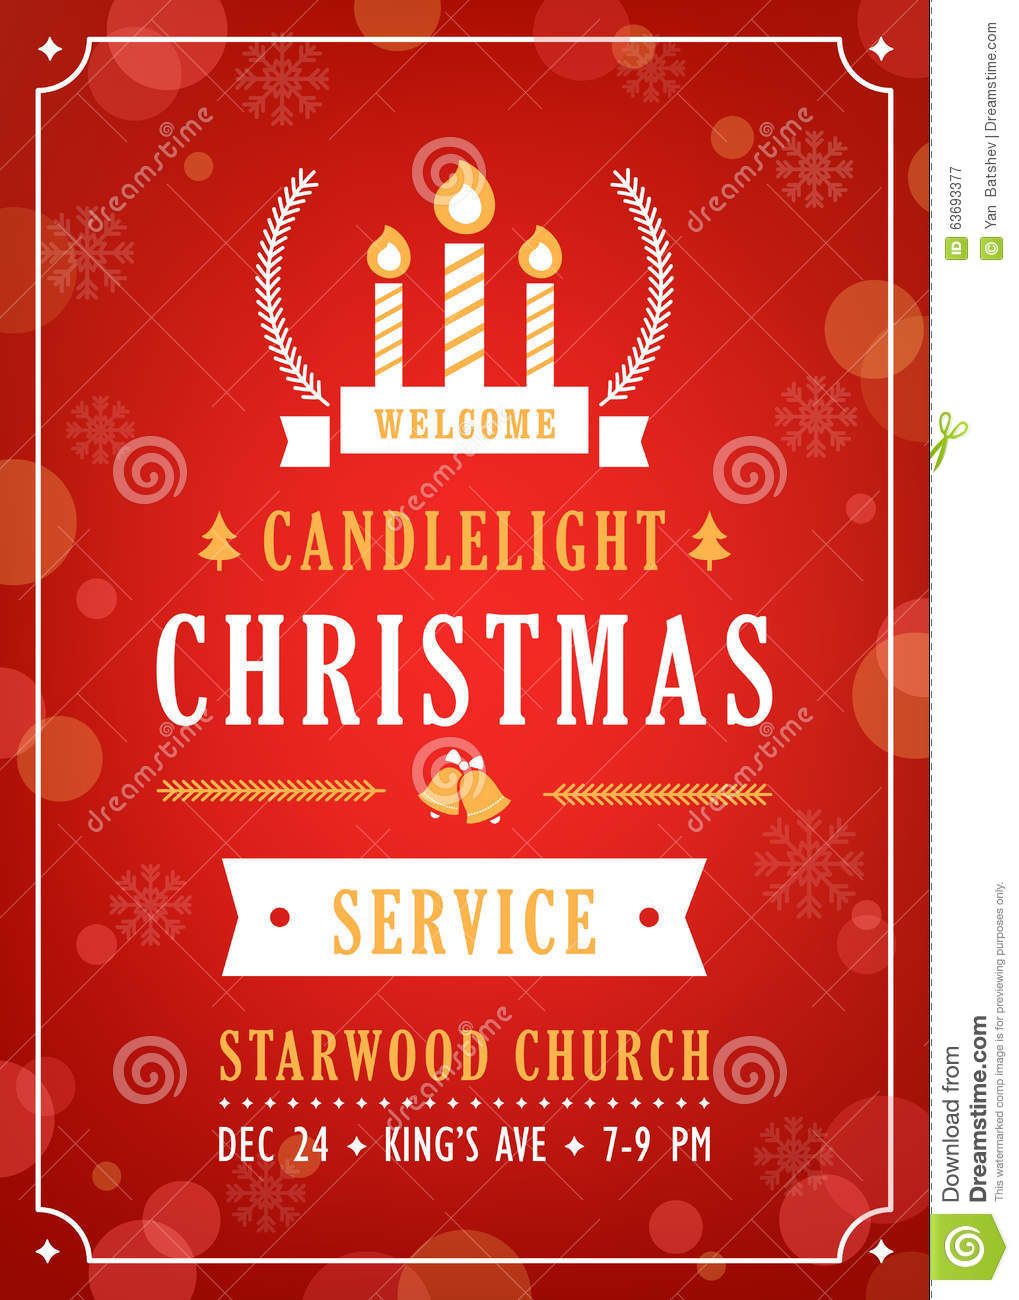 Christmas candlelight service church invitation stock vector download christmas candlelight service church invitation stock vector illustration of noel invitation stopboris Image collections